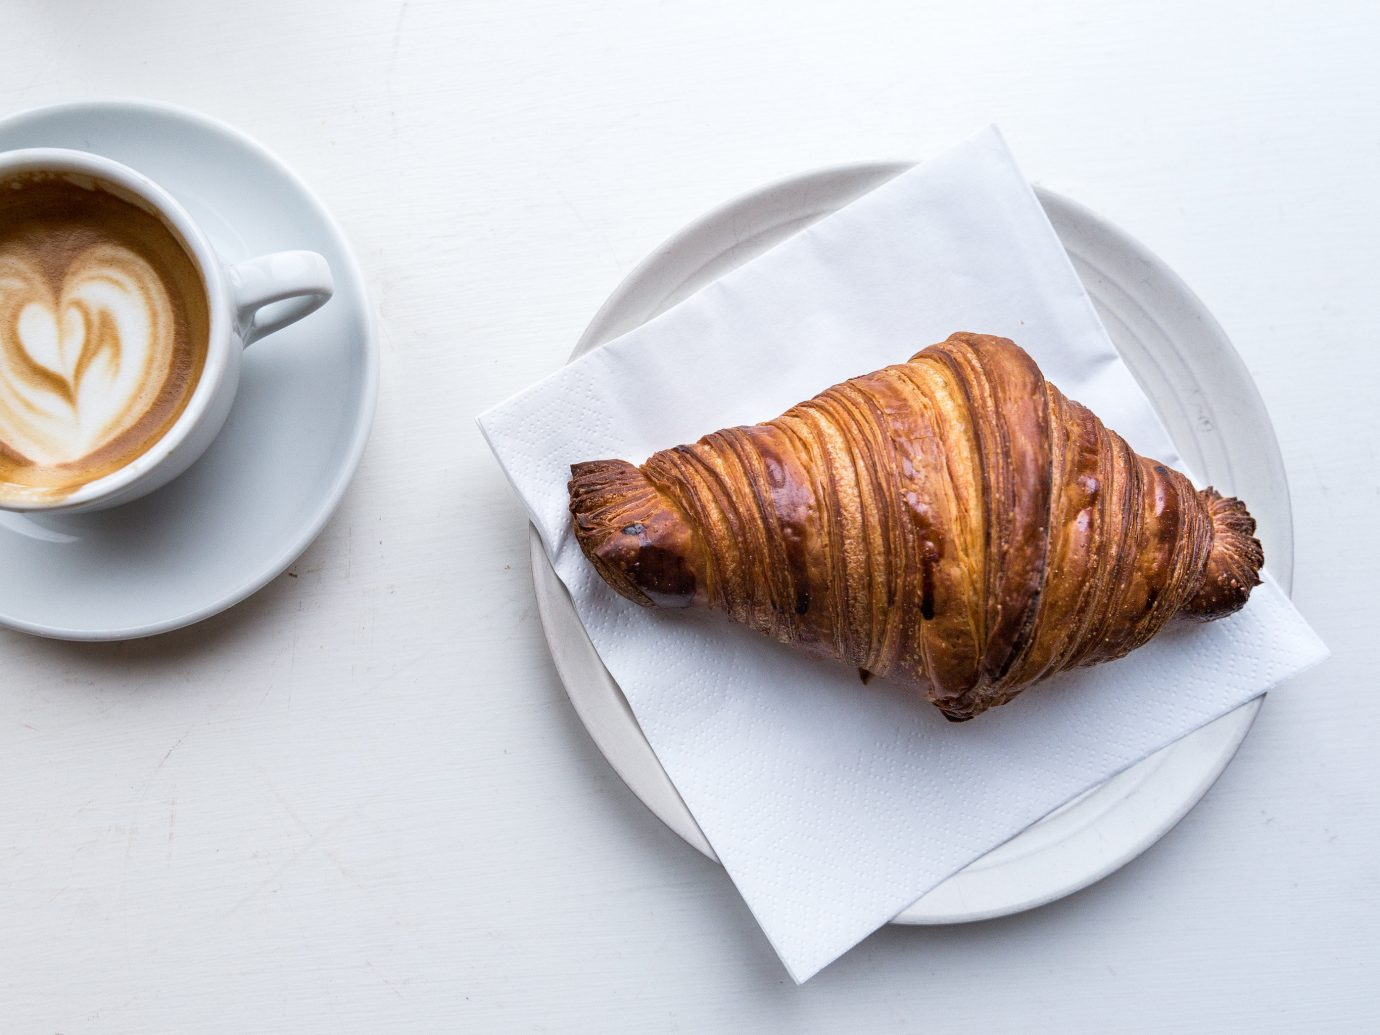 Copenhagen Denmark Trip Ideas table cup coffee plate pain au chocolat piece croissant danish pastry pastry food baked goods breakfast slice flavor dessert